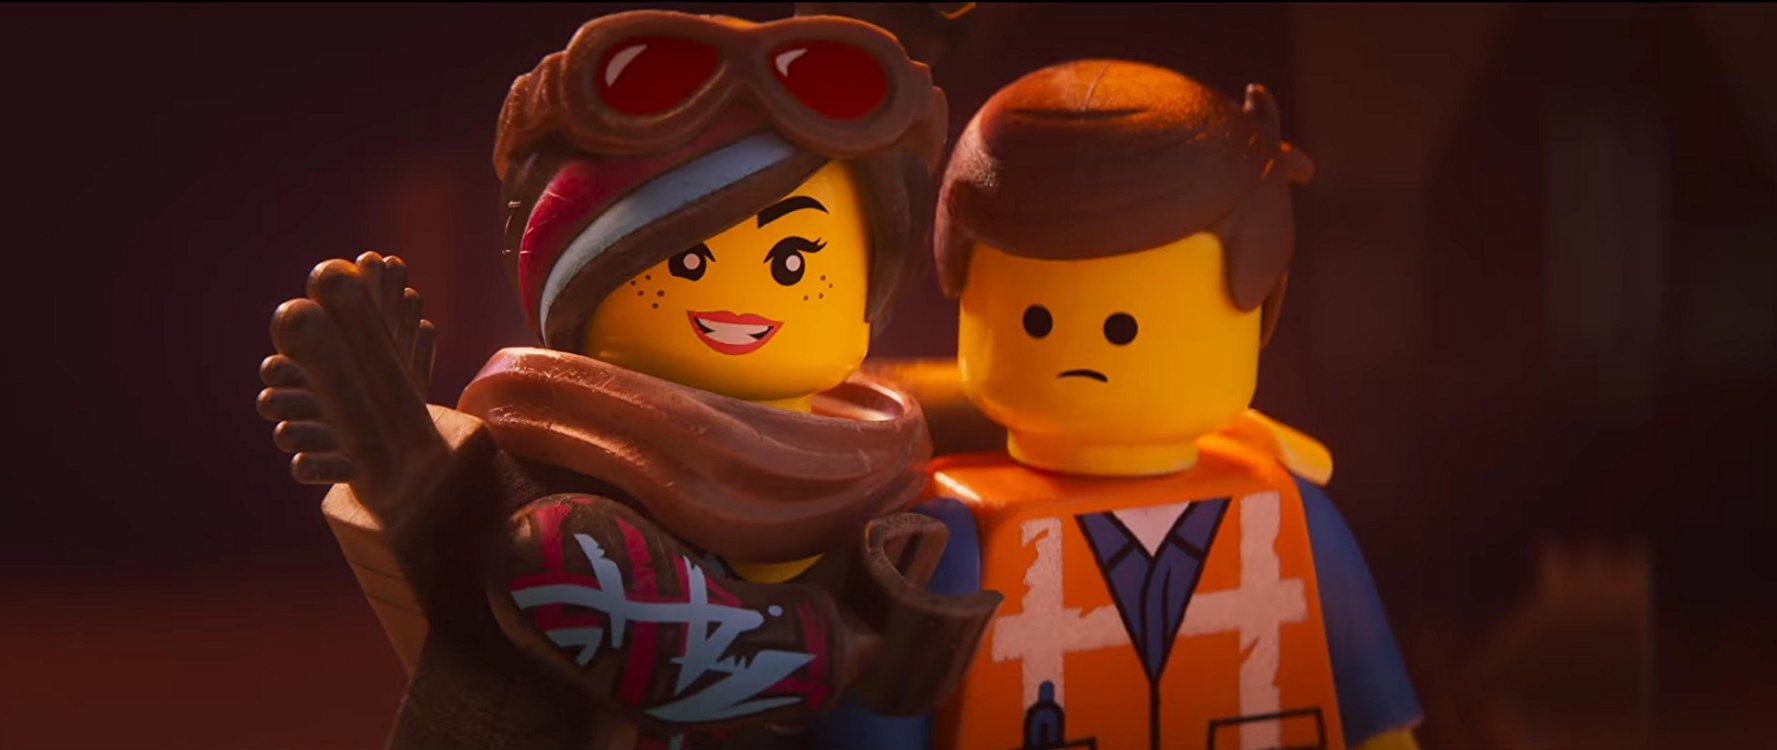 Lucy and Emmet - The Lego Movie 2: A New Adventure